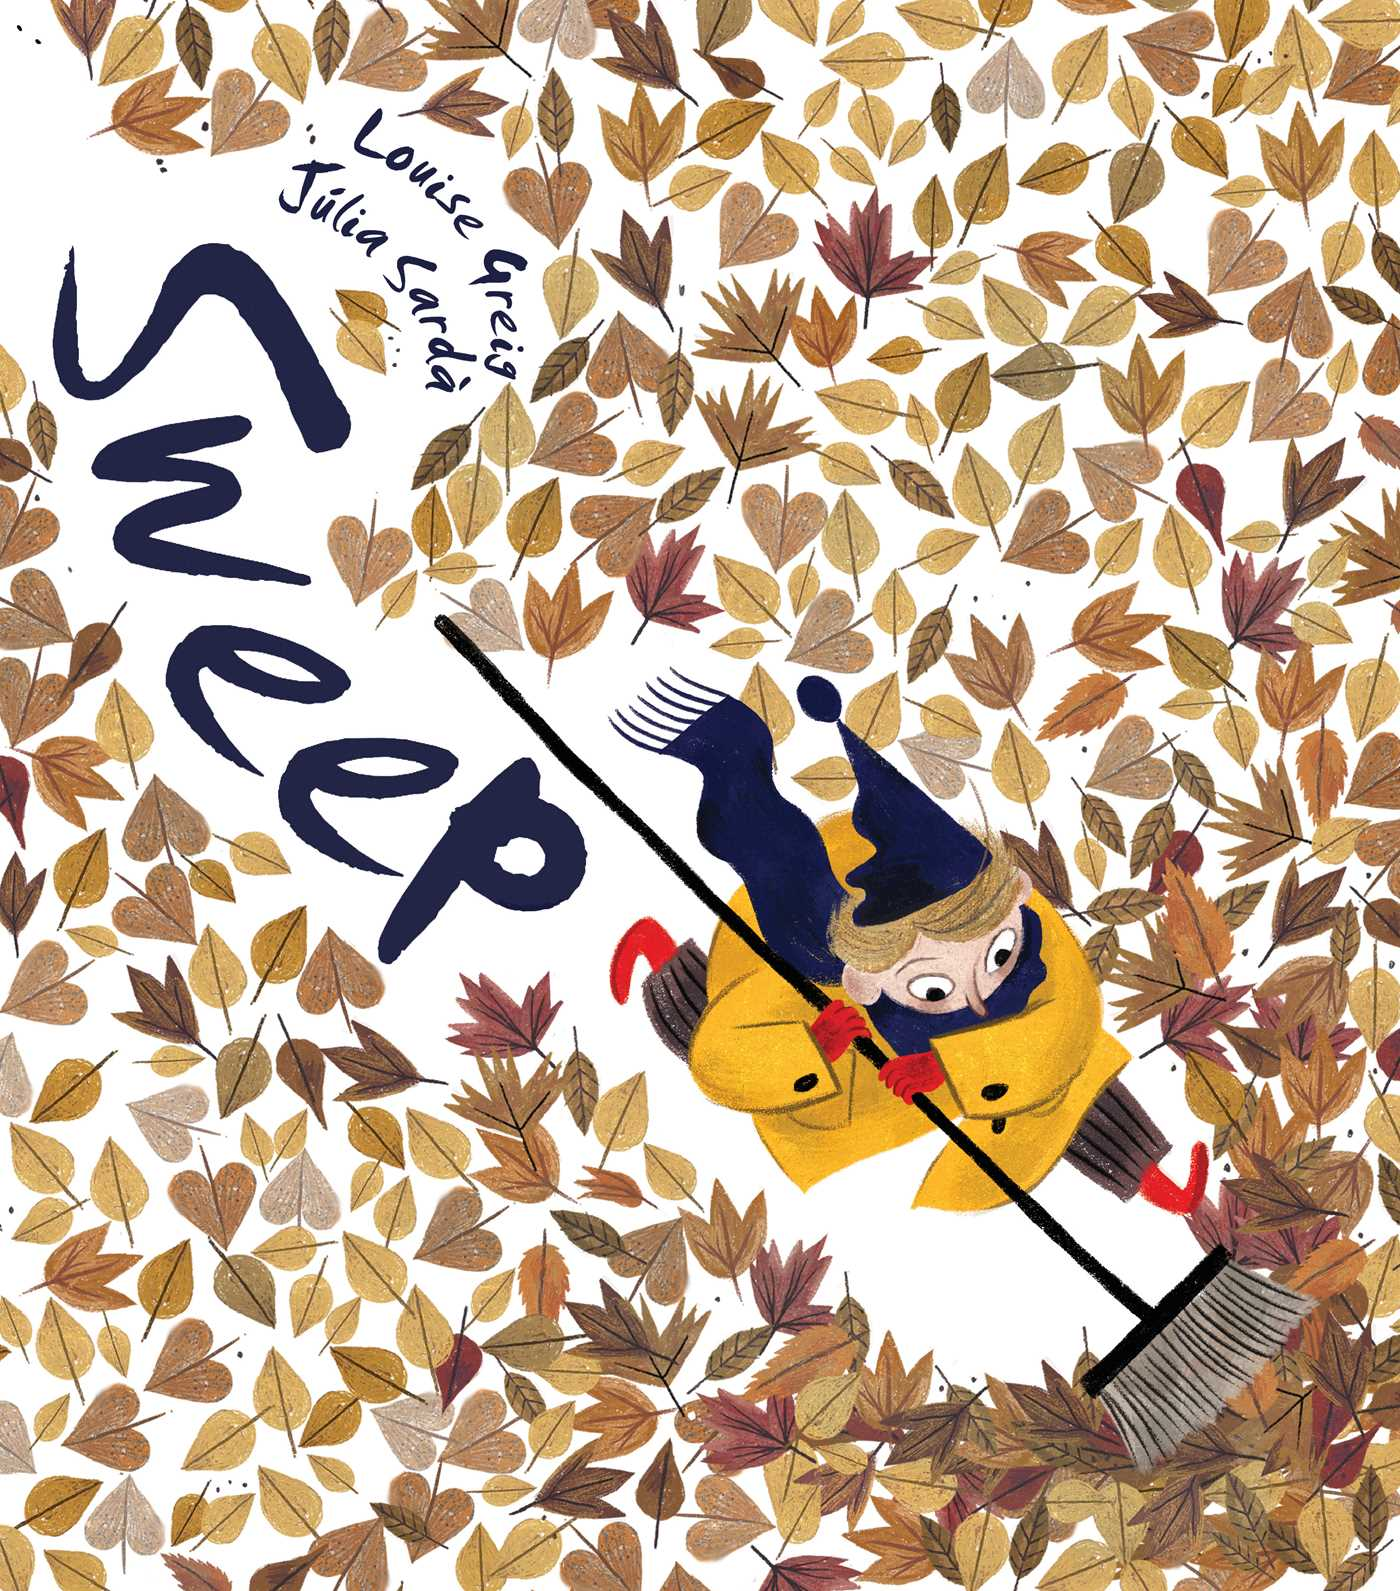 Sweep | Book by Louise Greig, Júlia Sardà | Official Publisher Page | Simon & Schuster